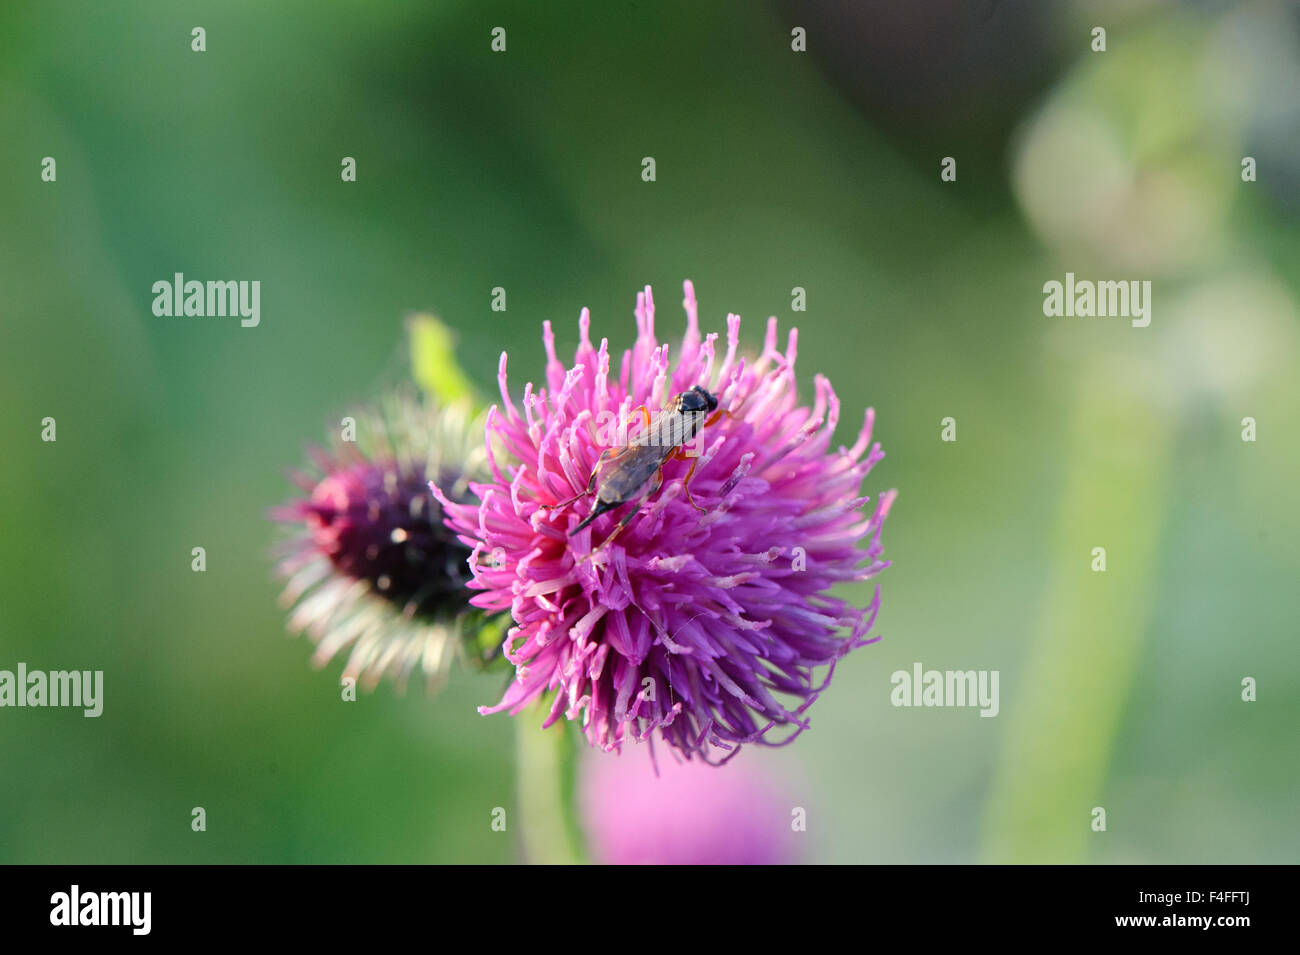 Purple Clover Flower Stock Photo 88852194 Alamy